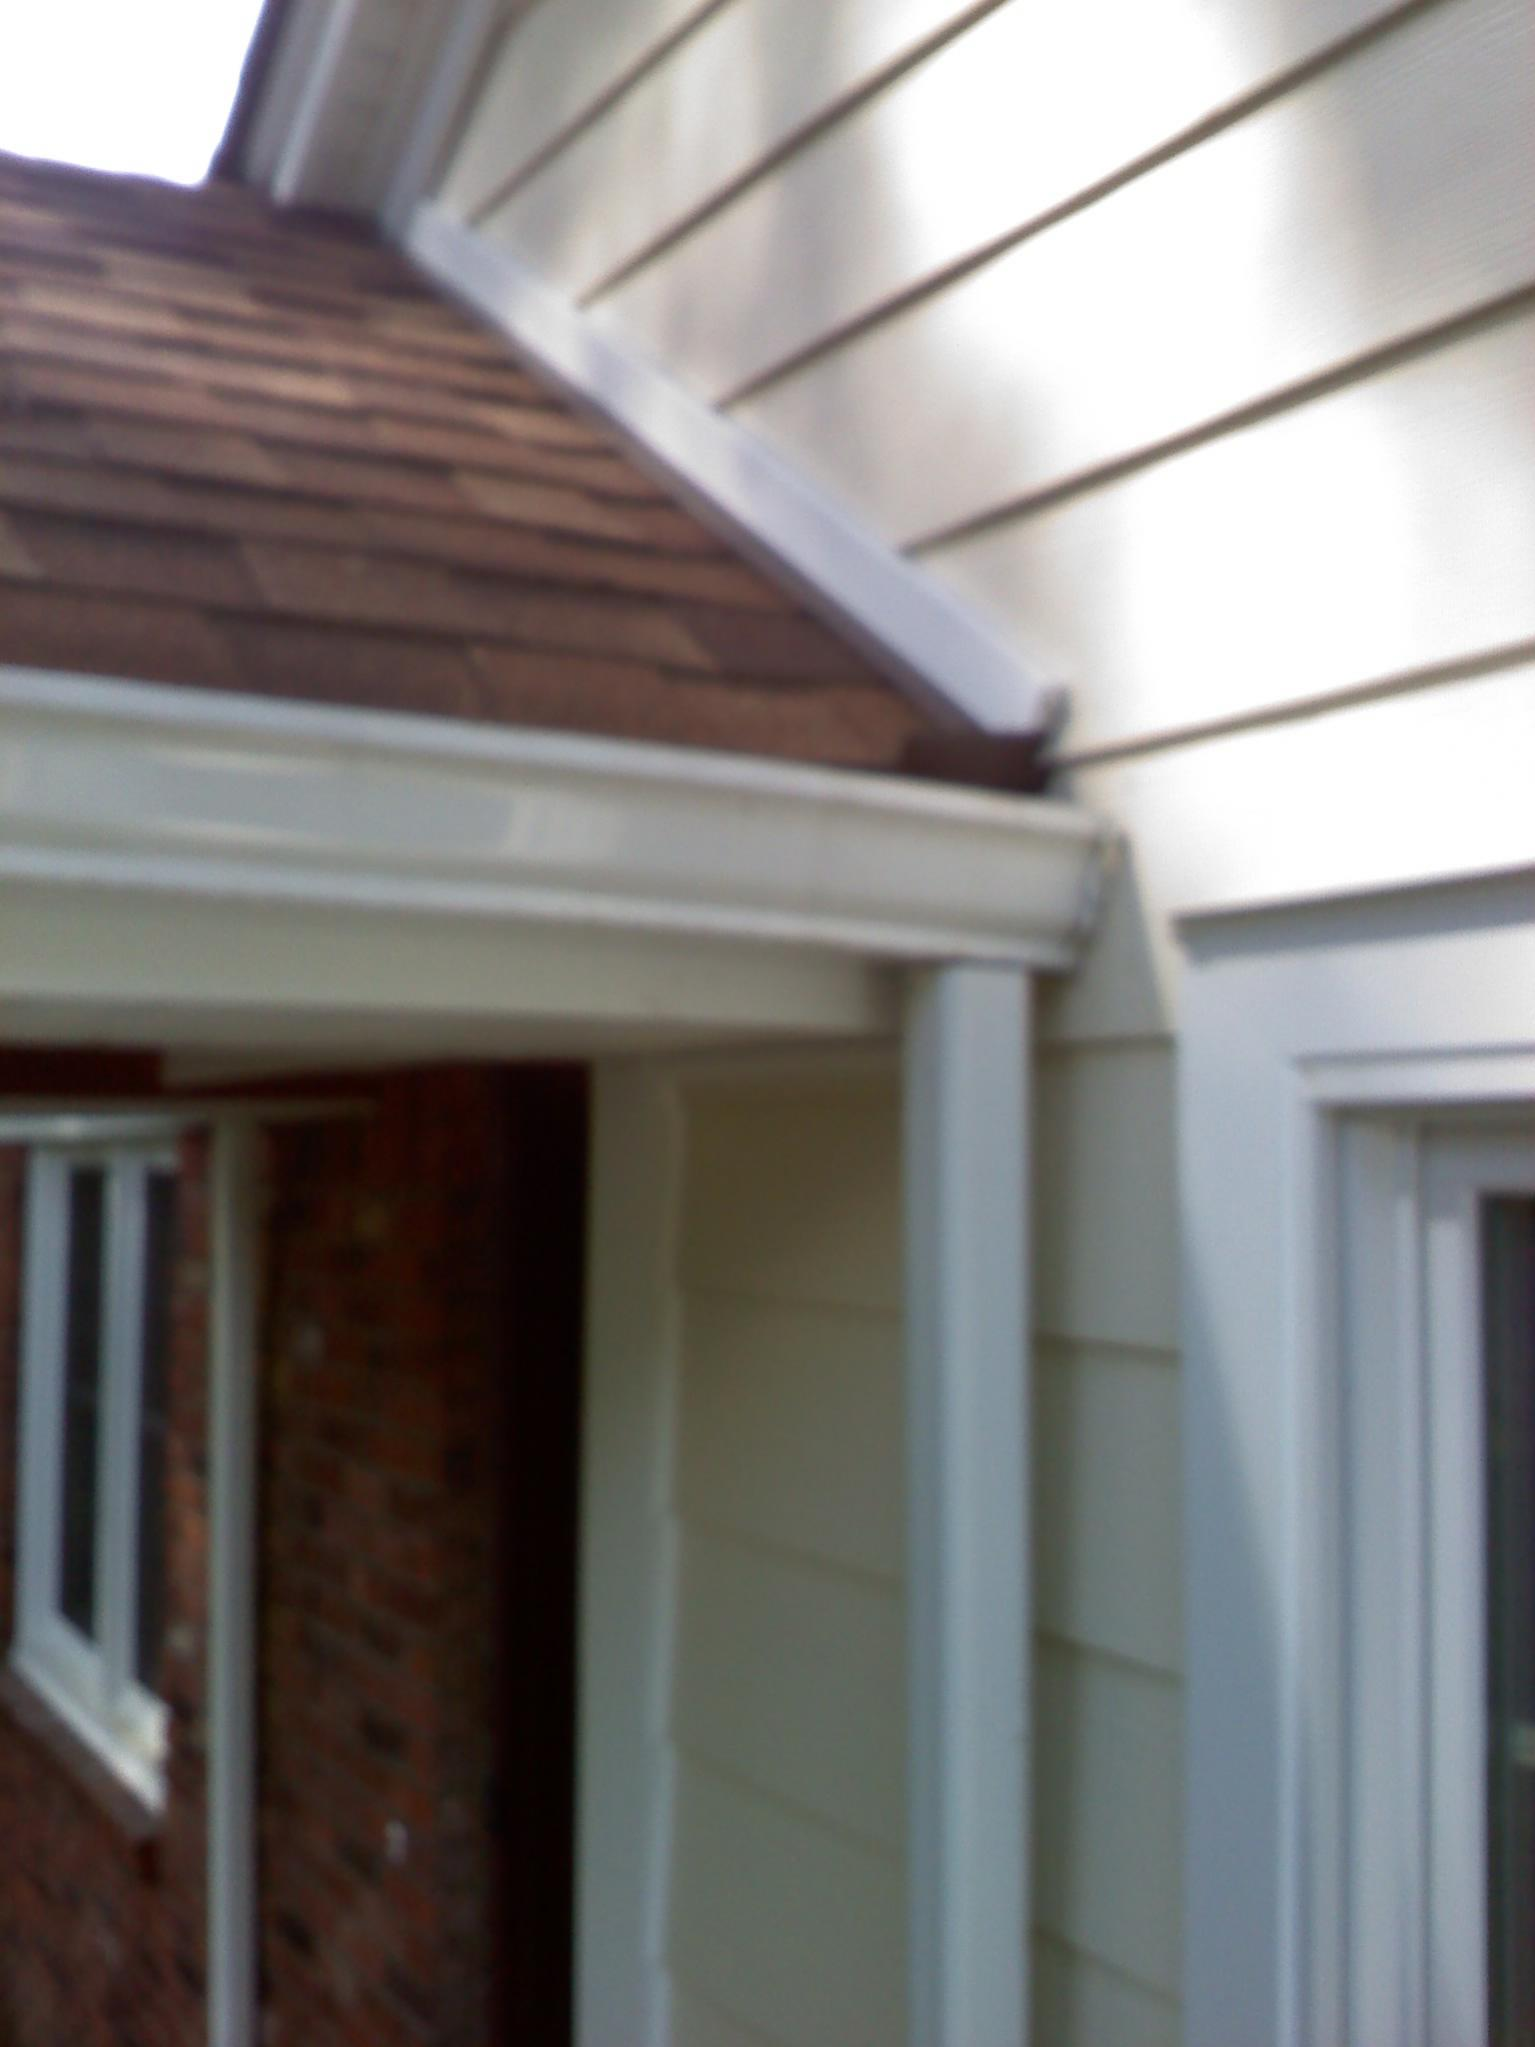 Shingle To Vinyl J Channel Spacing Windows Siding And